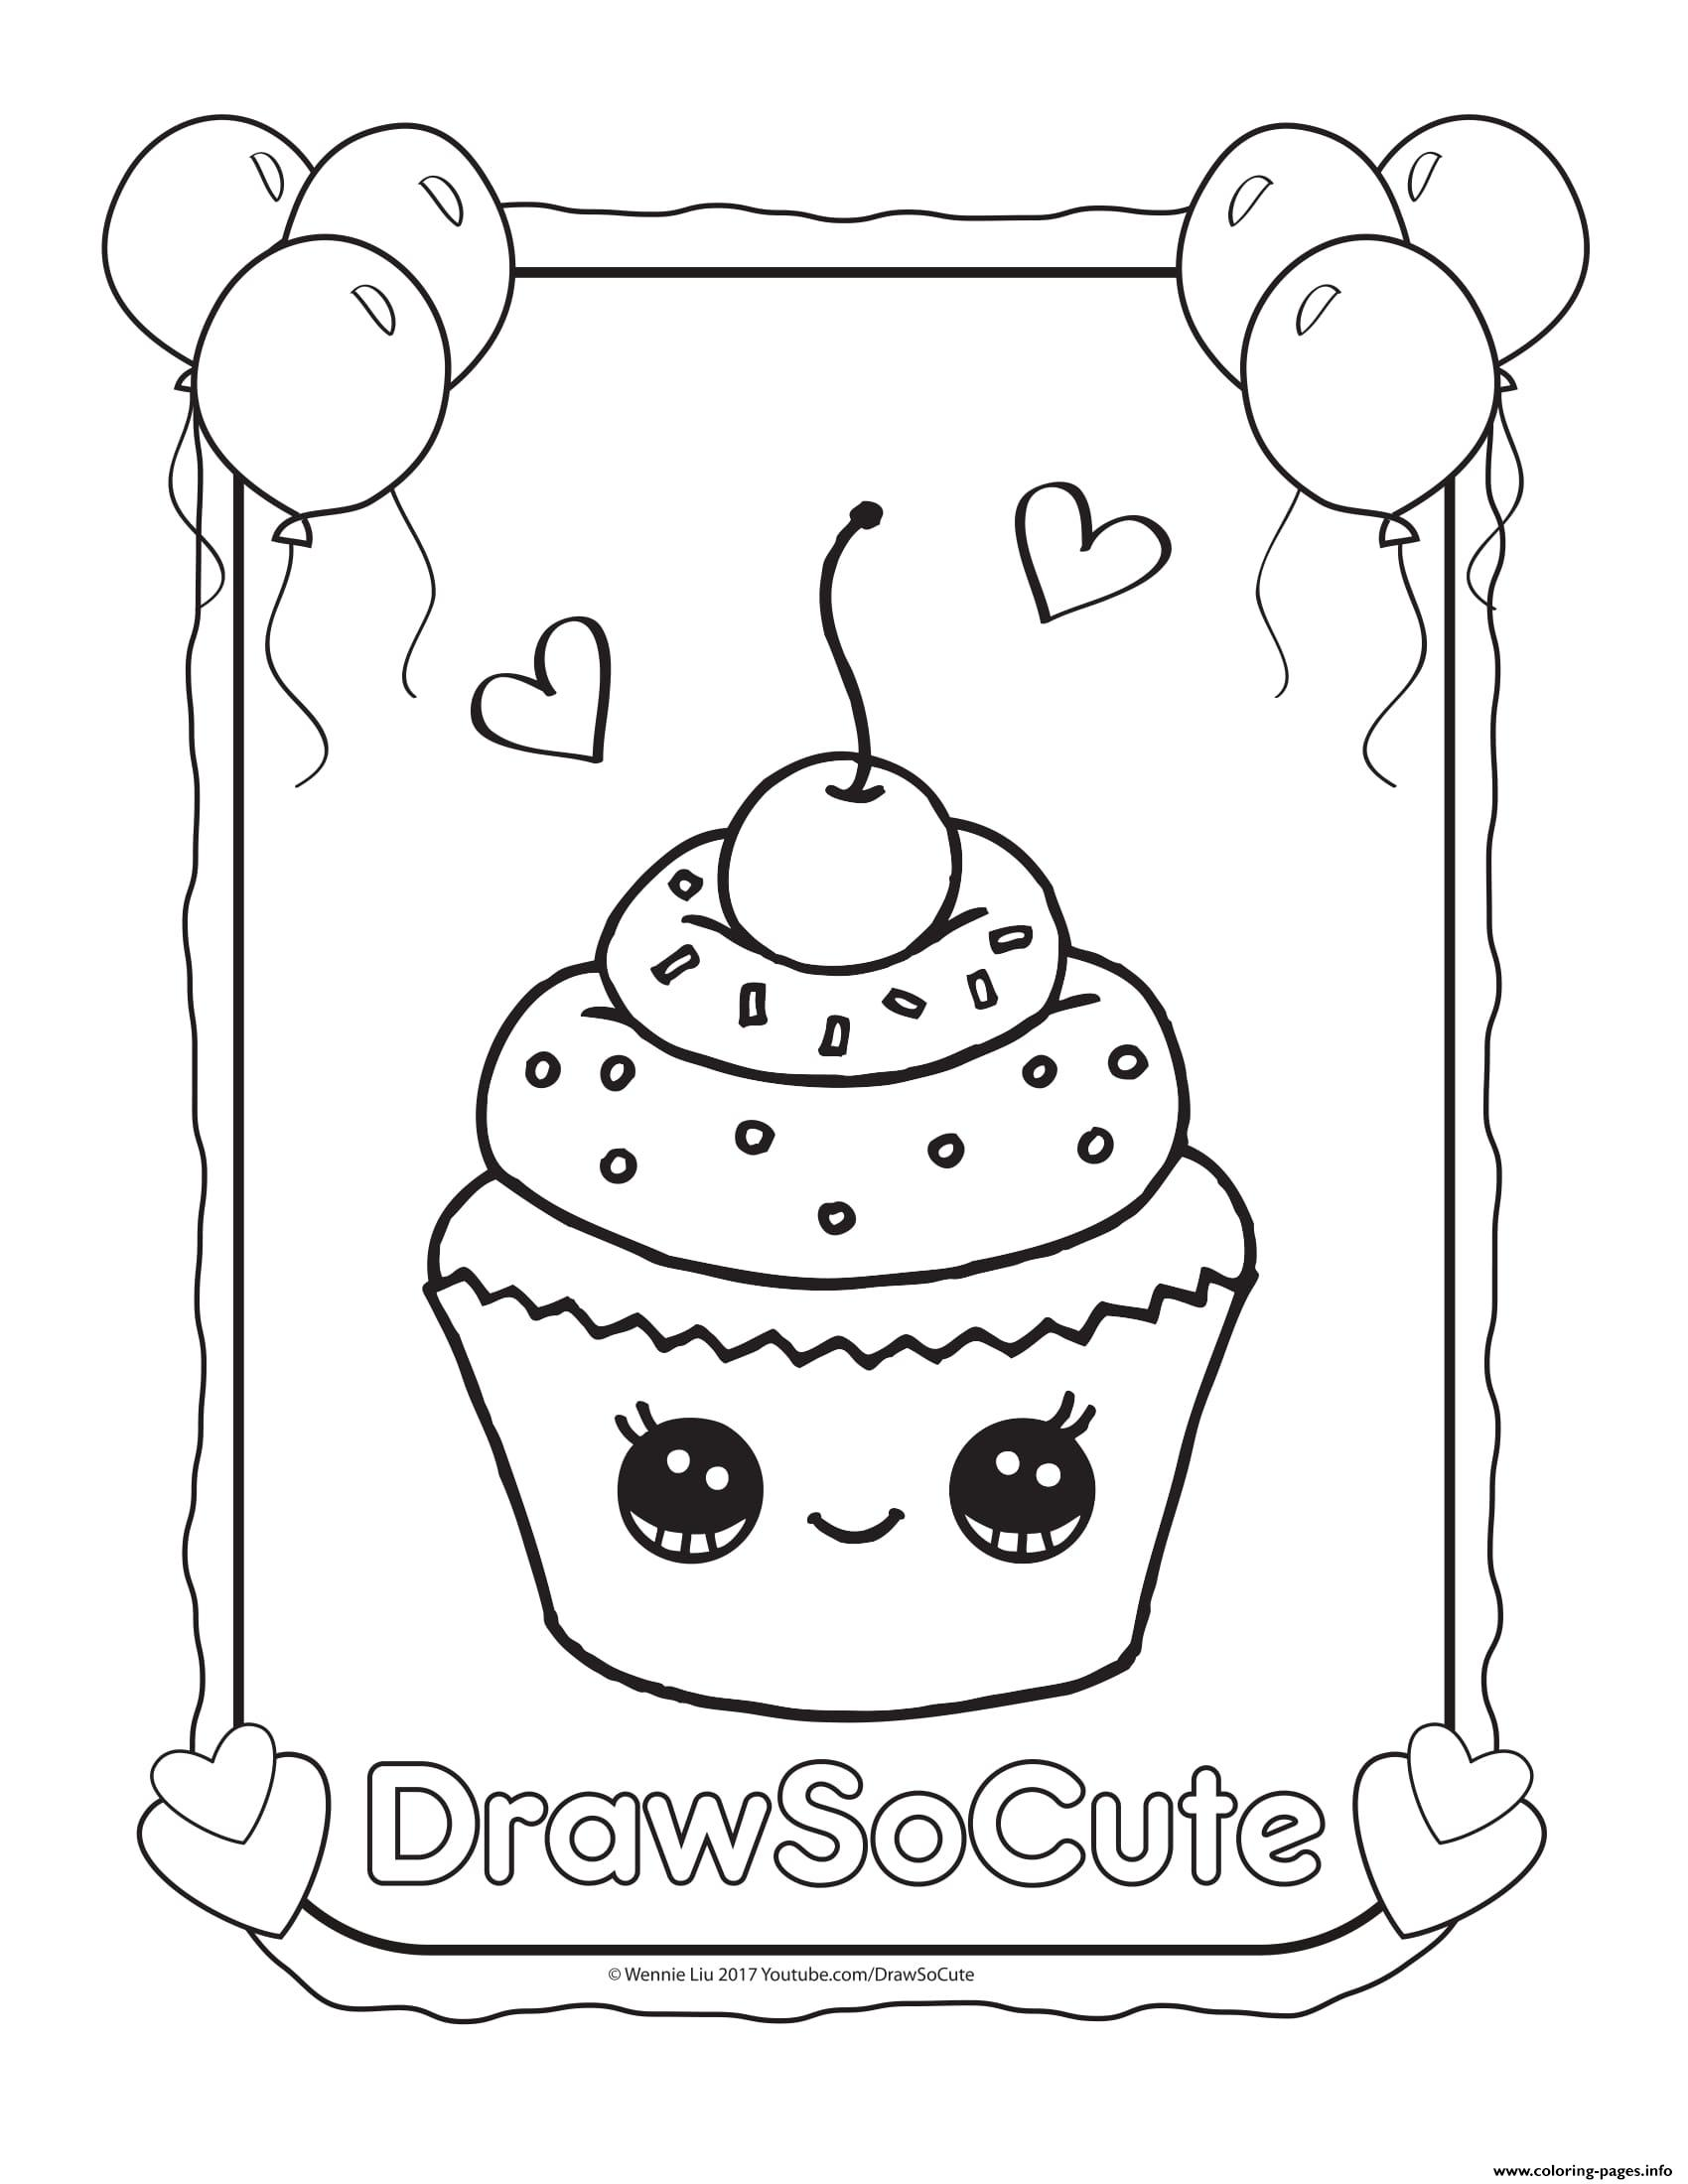 Cute Drawing at GetDrawings.com | Free for personal use Cute Drawing ...